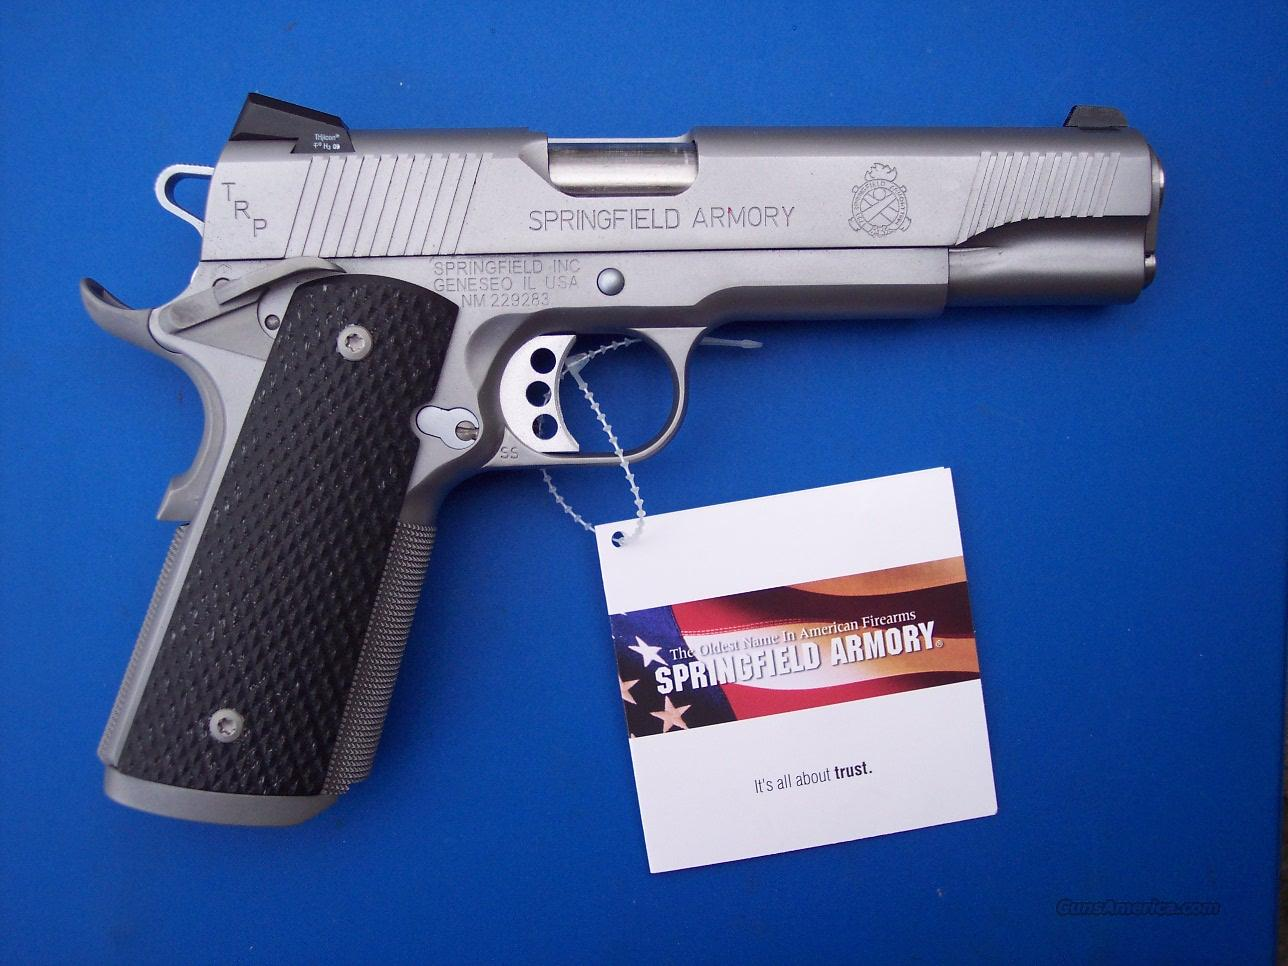 Springfield 1911 TRP Stainless 45 acp *NEW* Tactical Response Pistol PC9107LP  Guns > Pistols > Springfield Armory Pistols > 1911 Type